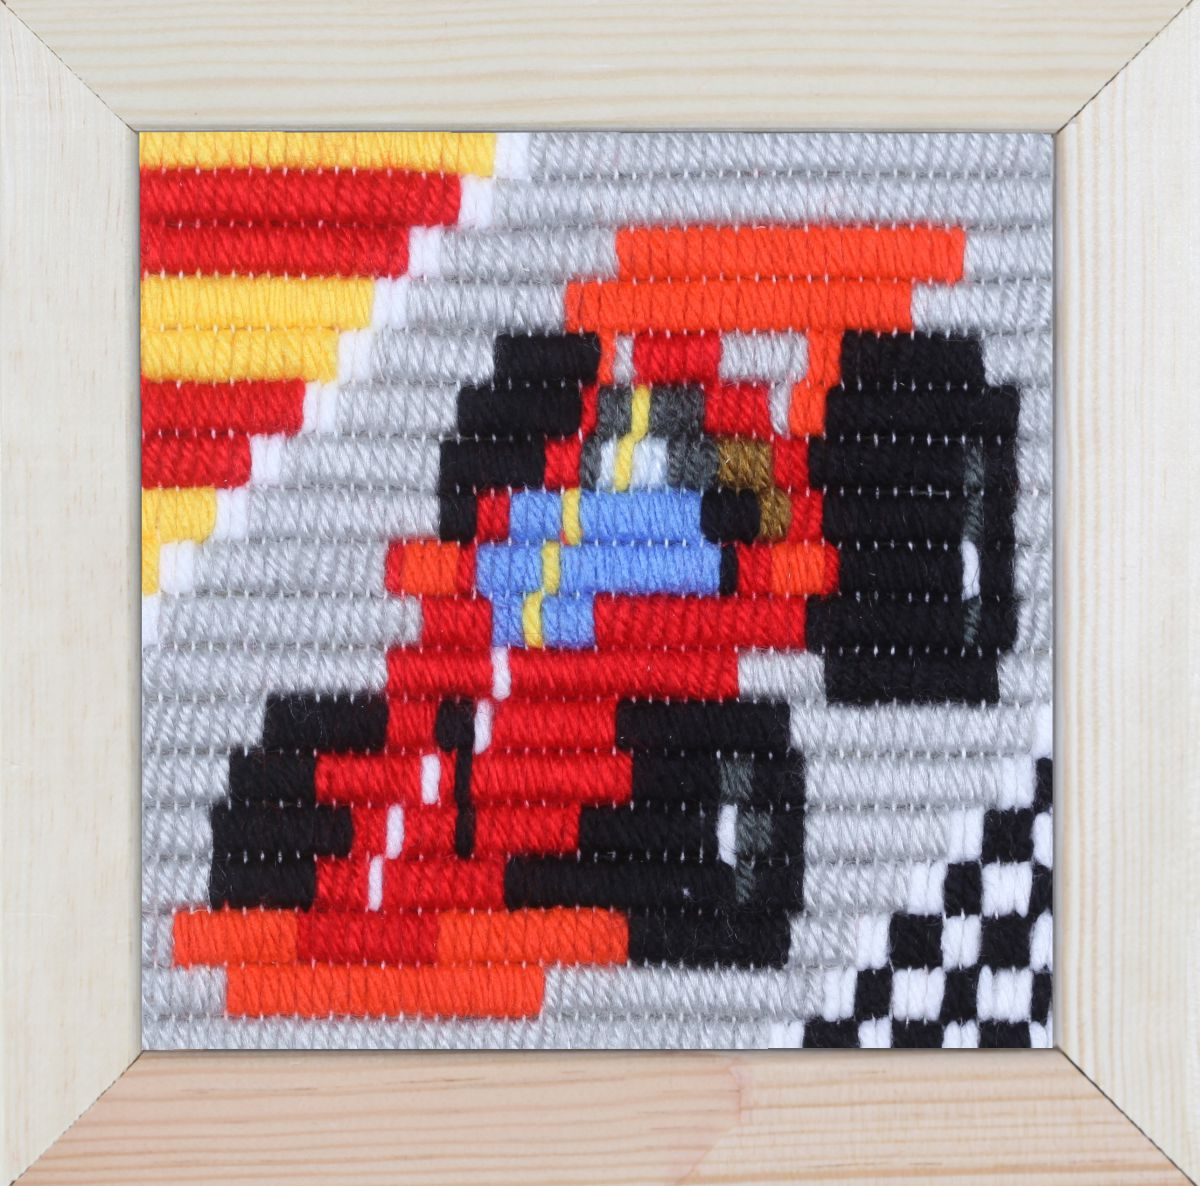 embroidery kit for children short flat stitch formula one racecar